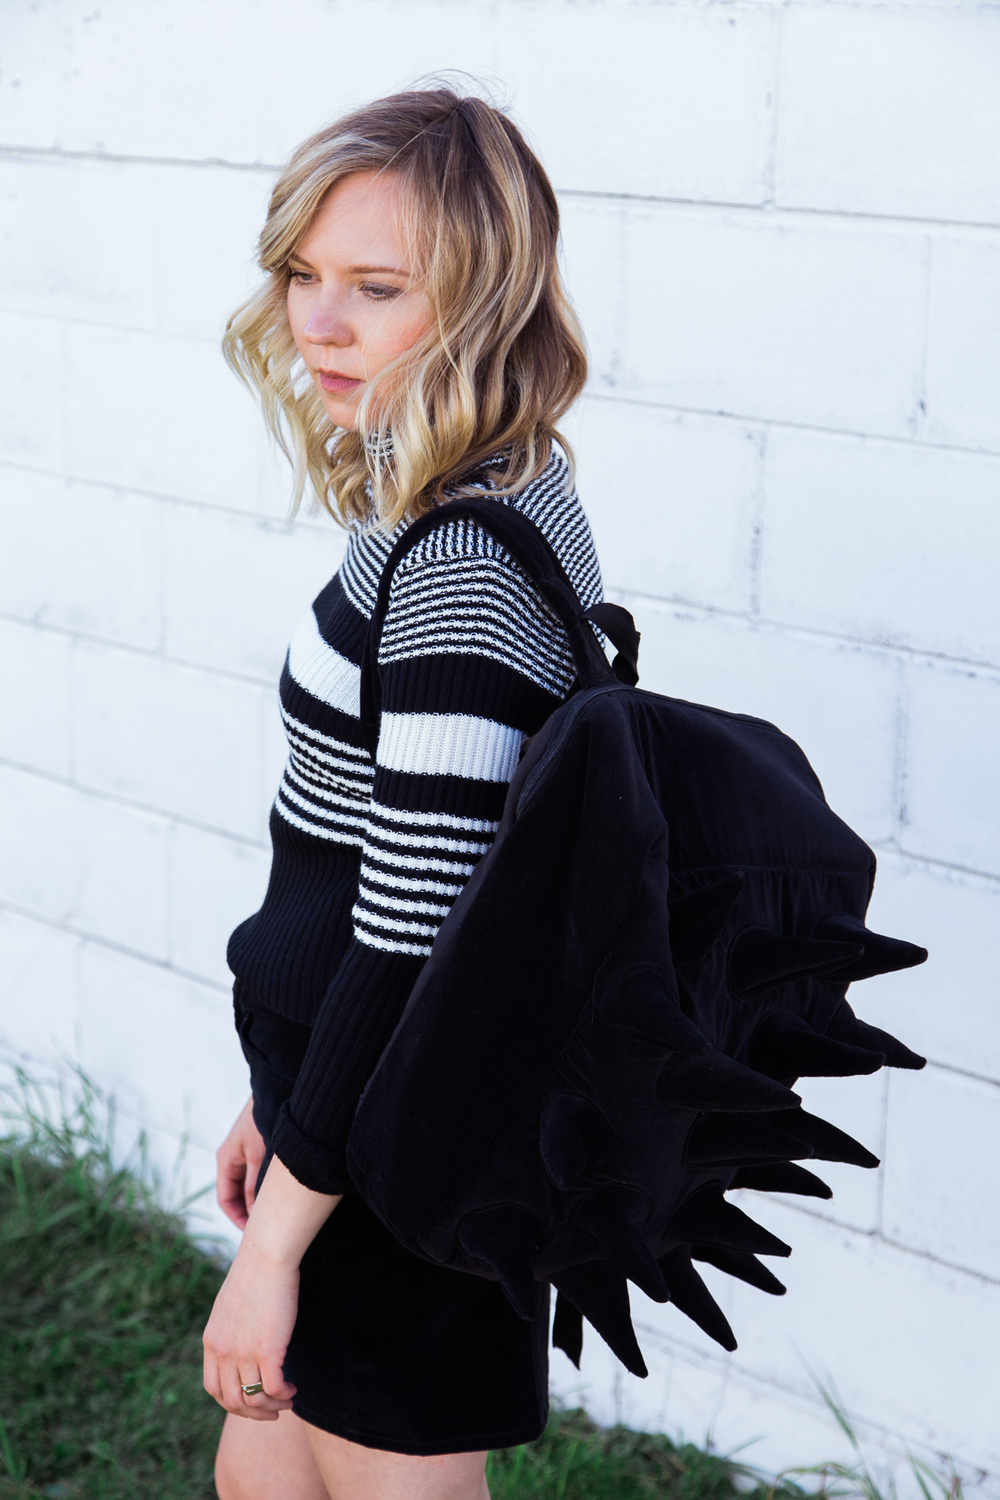 moth-oddities-alacloth-vintage-session-1-back-to-school-lookbook-12.jpg